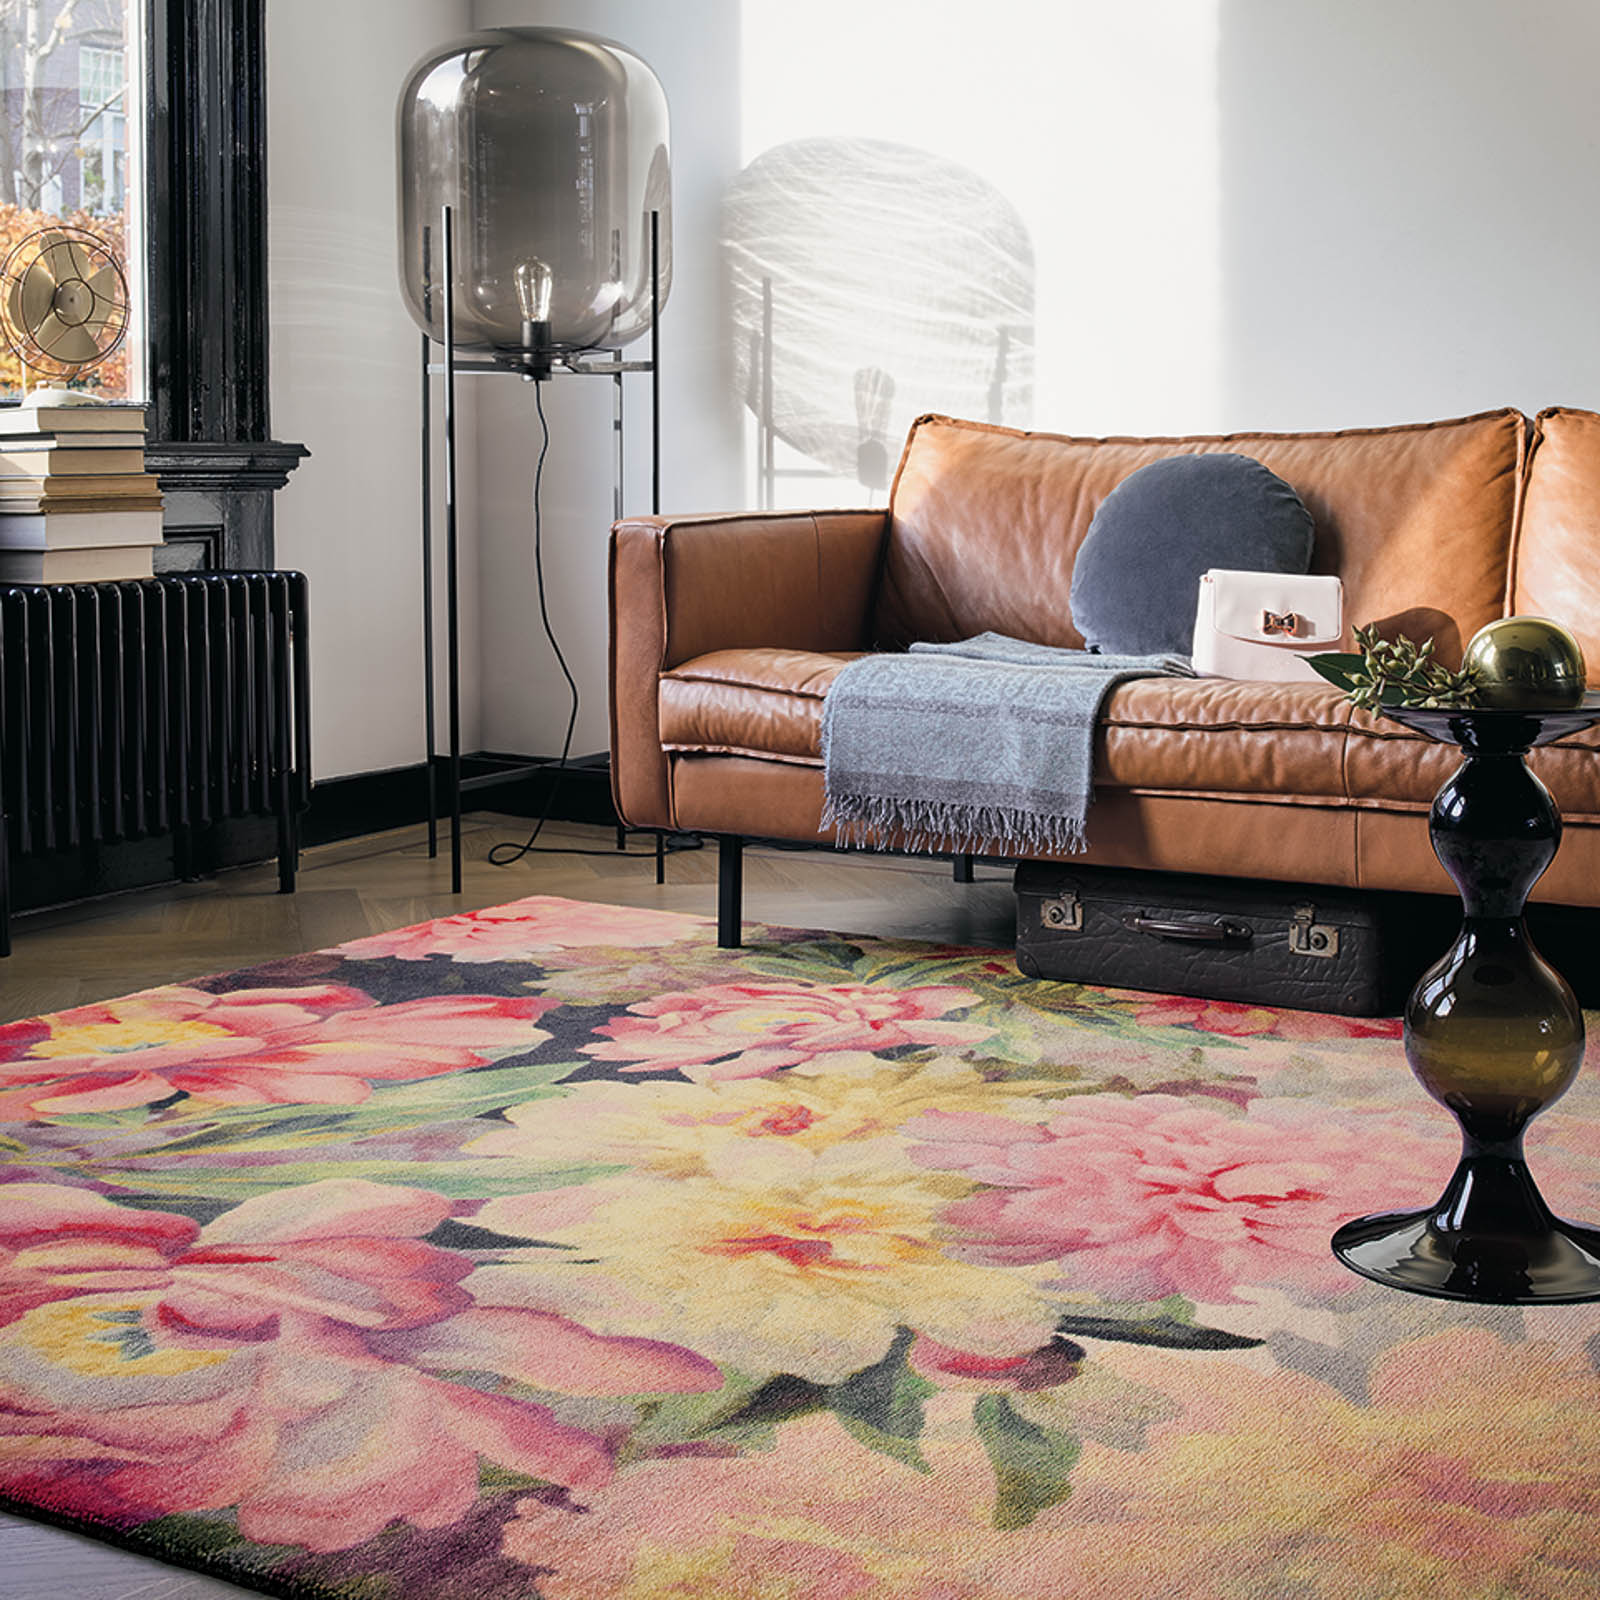 ted baker designer rug brand from the rug seller